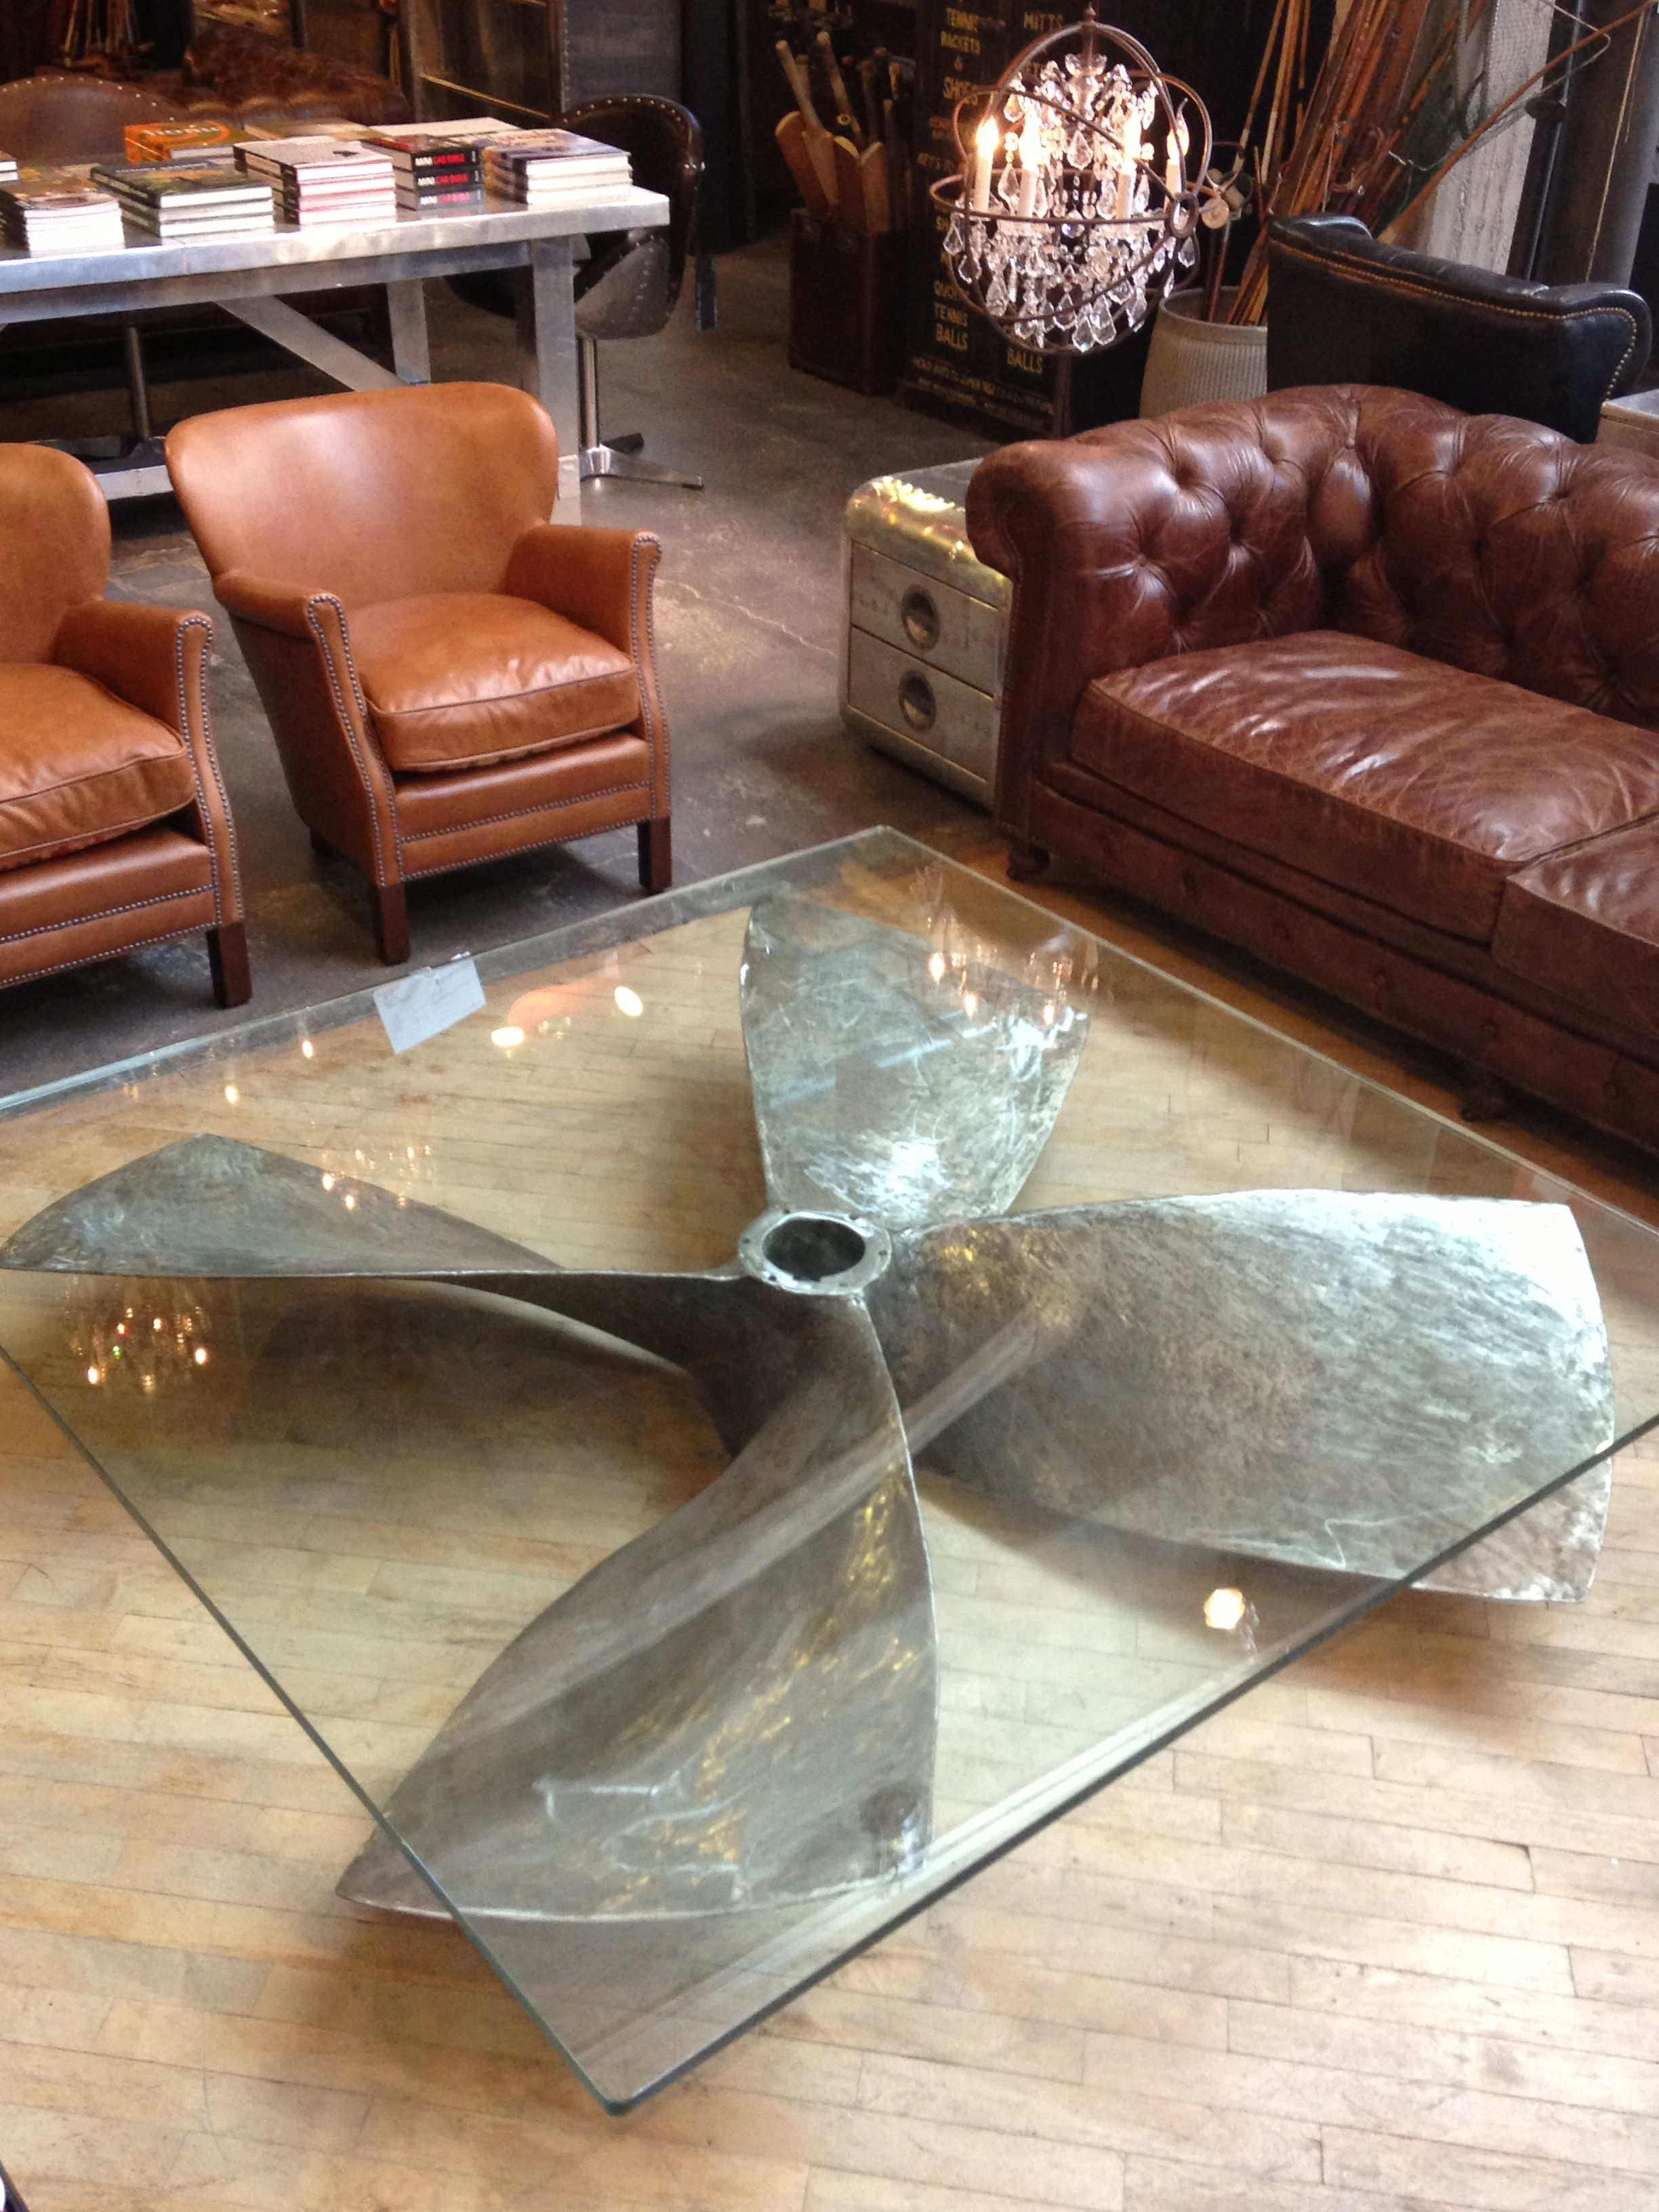 Steampunk Couchtisch Propeller Based Glass Table Tattoo Shop Interiors Couchtisch